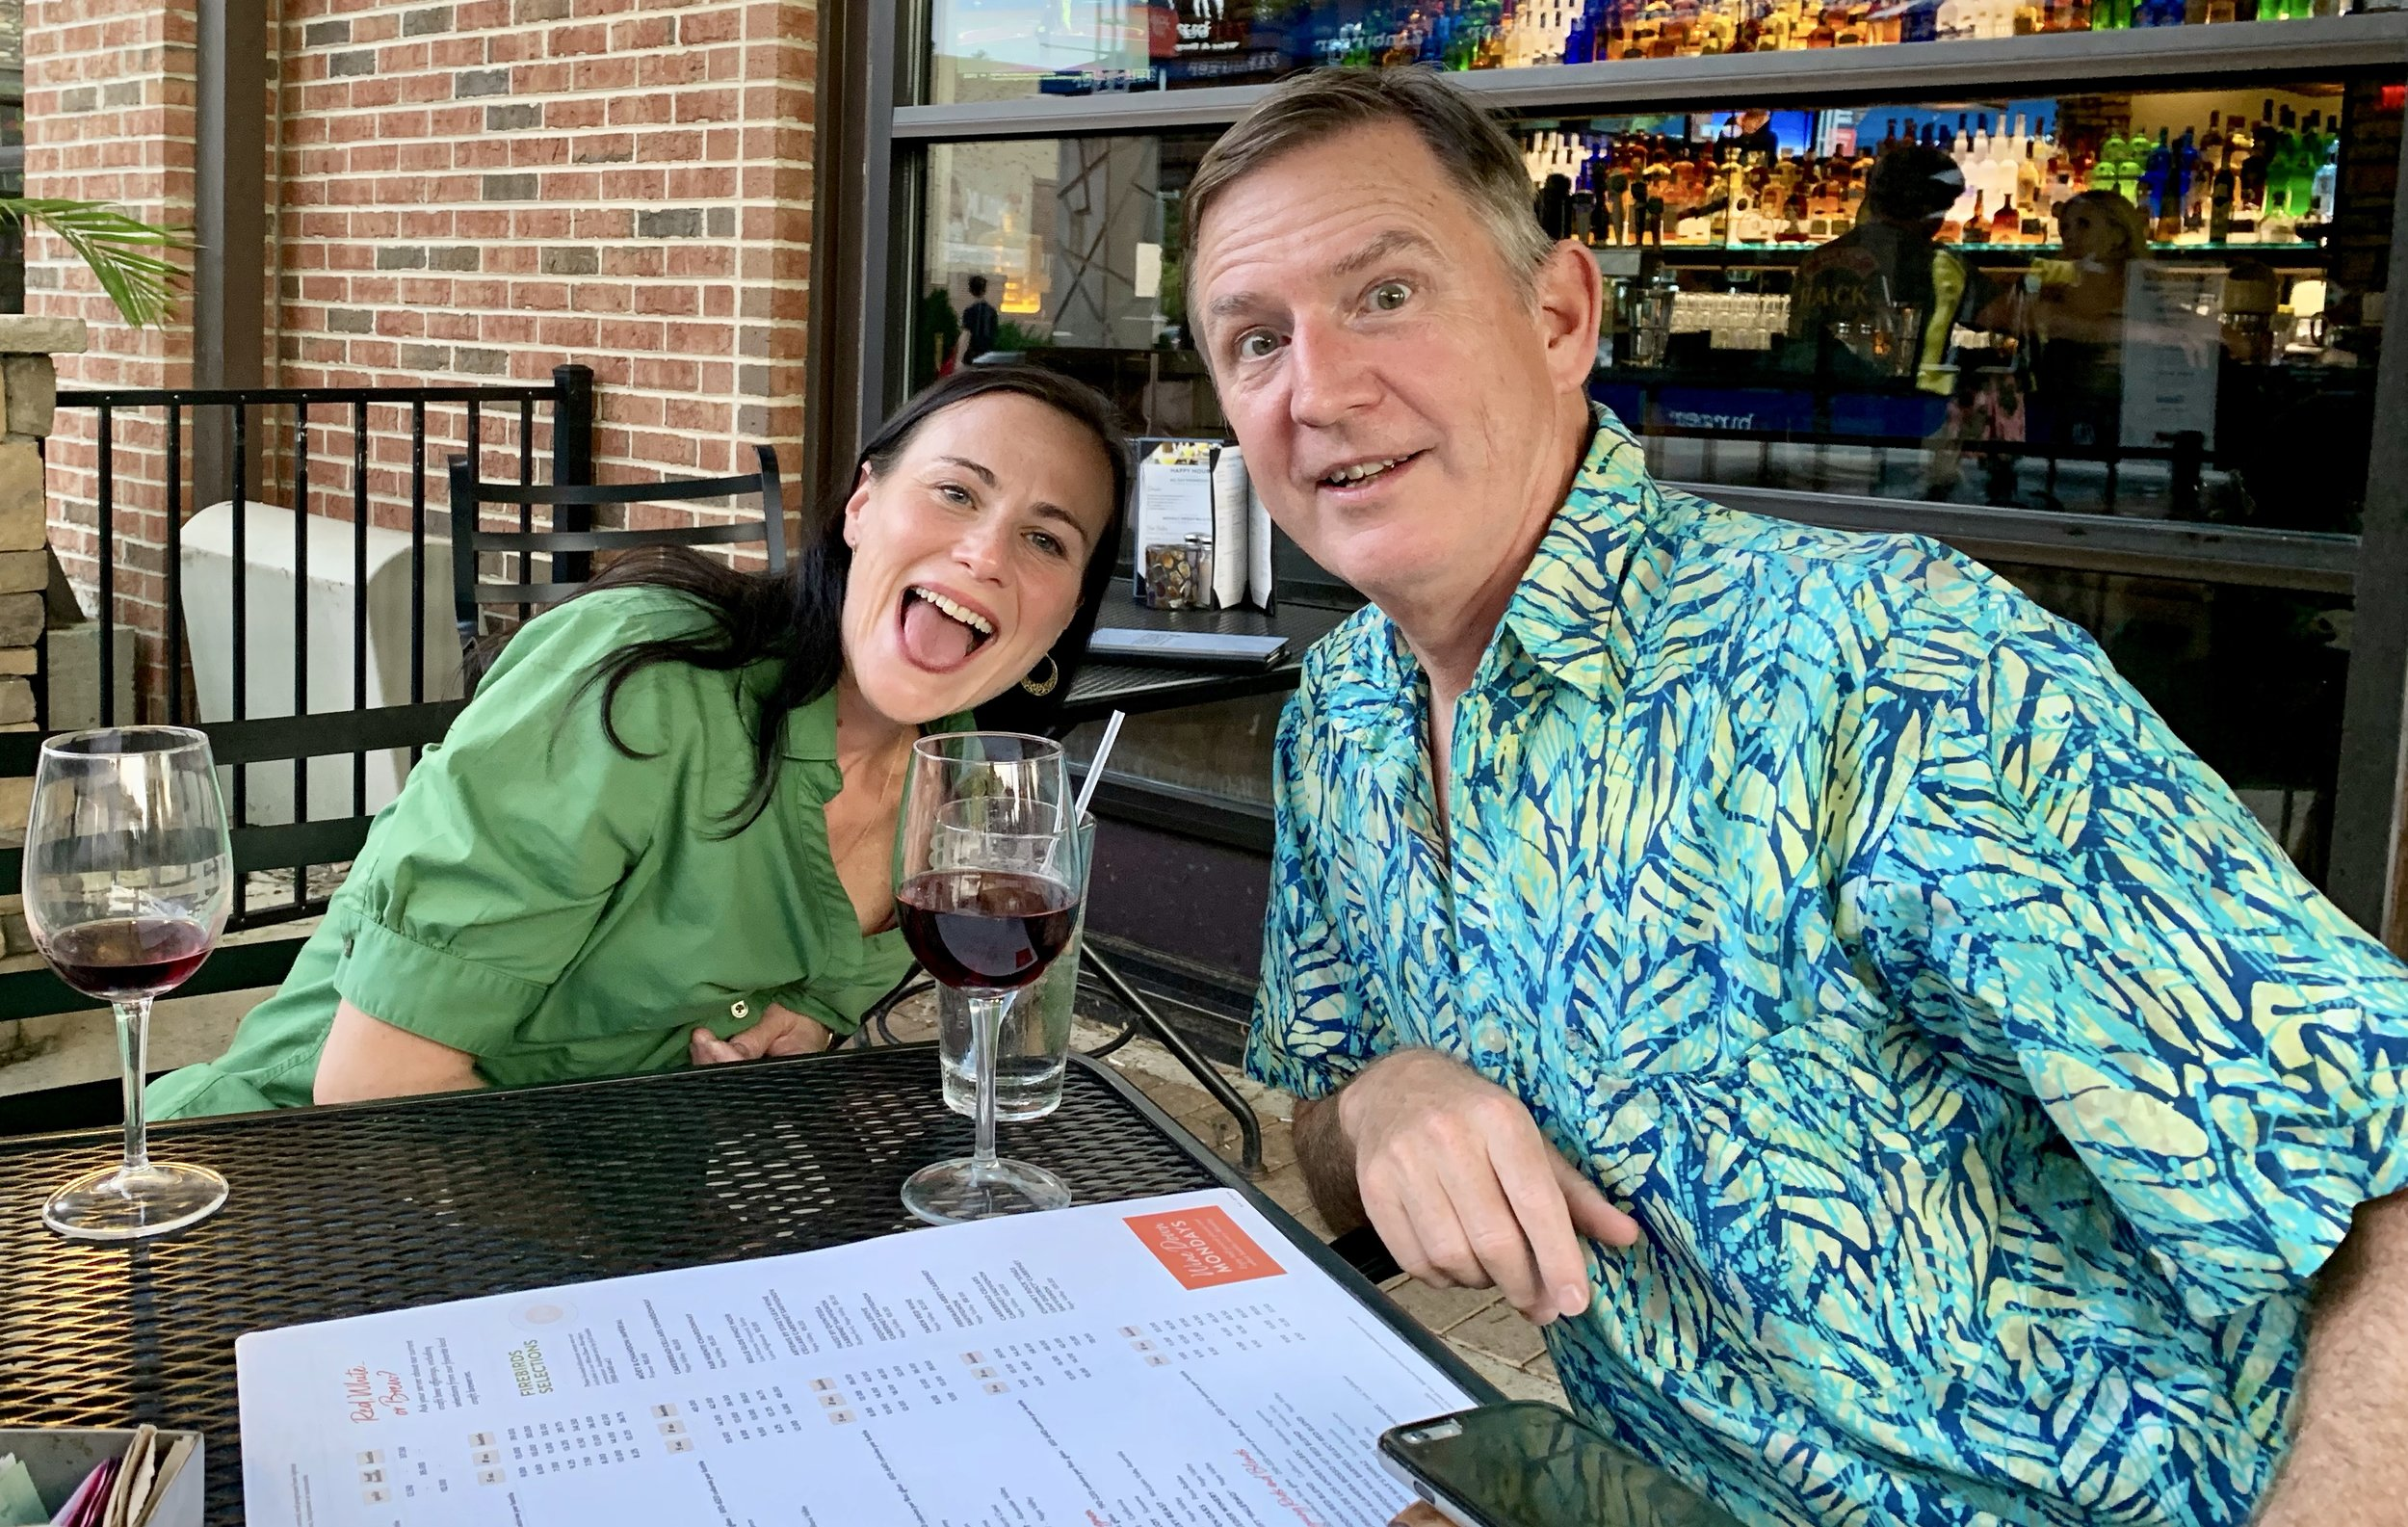 Amy berger and dr. eric westman as we enjoyed some adult beverages and conversation recently.